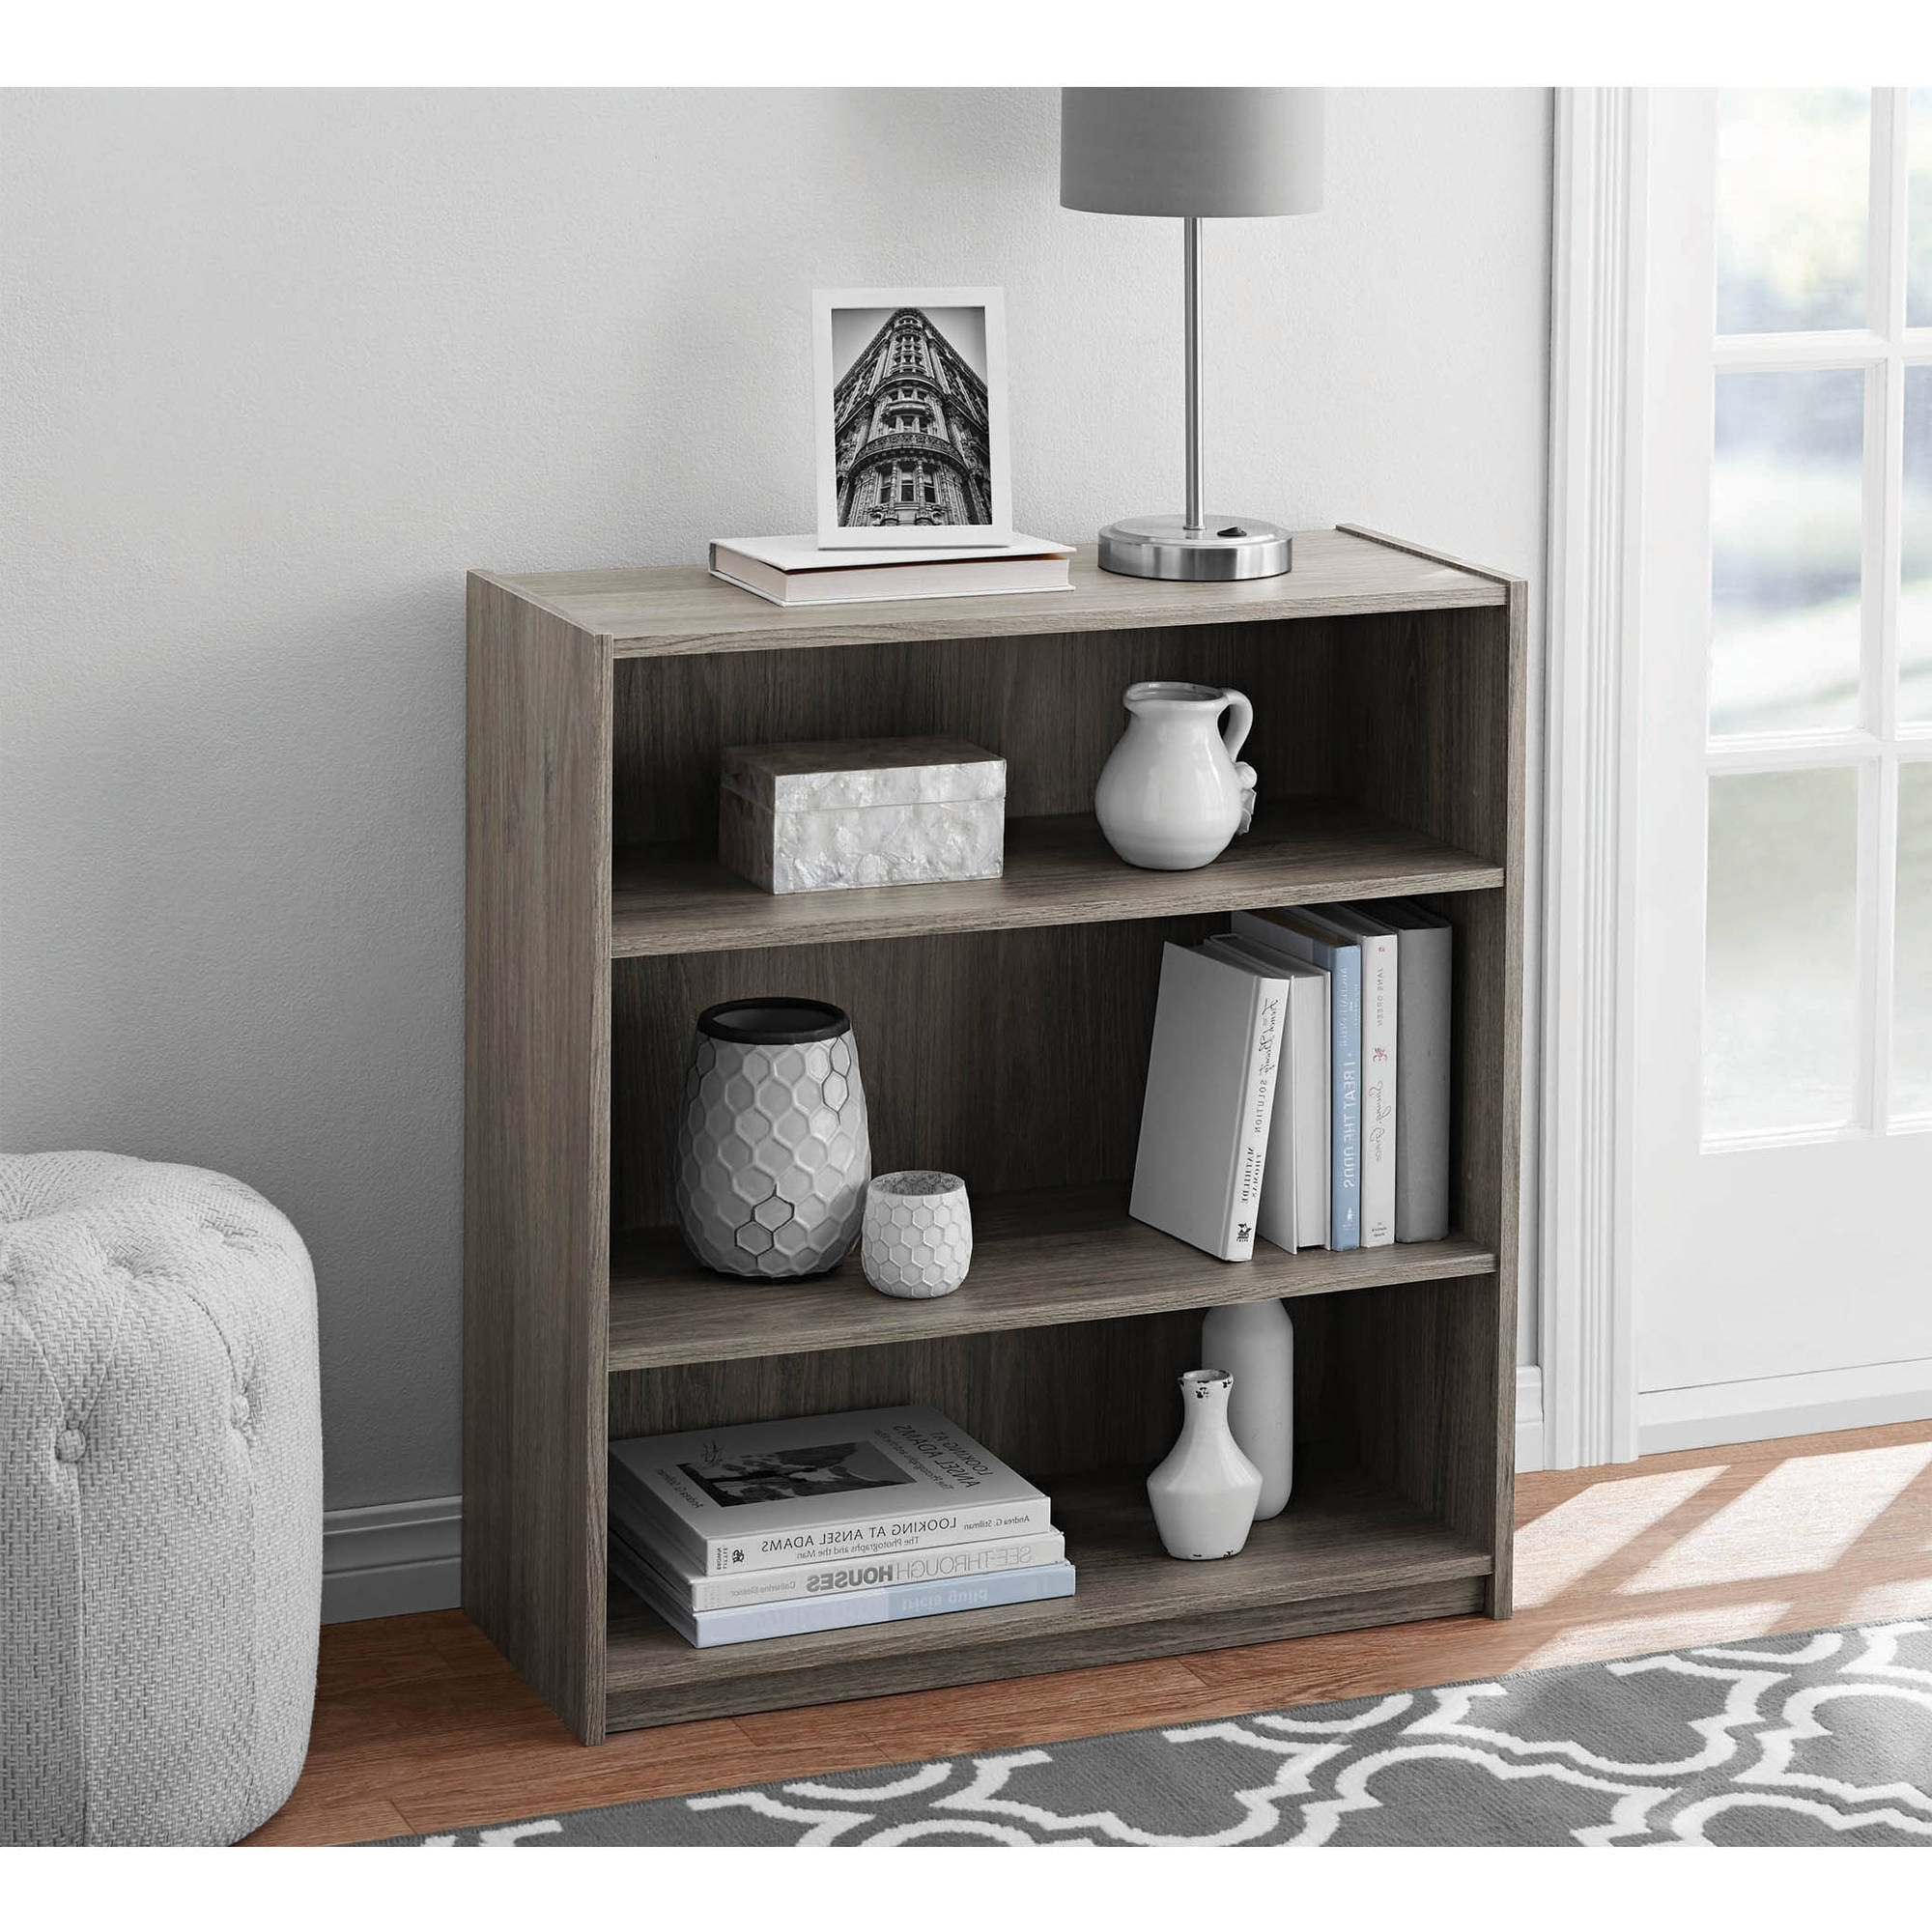 shelf decor bookcase brackets popular adjustable home bookshelves south awesome bookcases with shore for book material modern support blancket wooden axess white rustic supports woo cute design and elegant